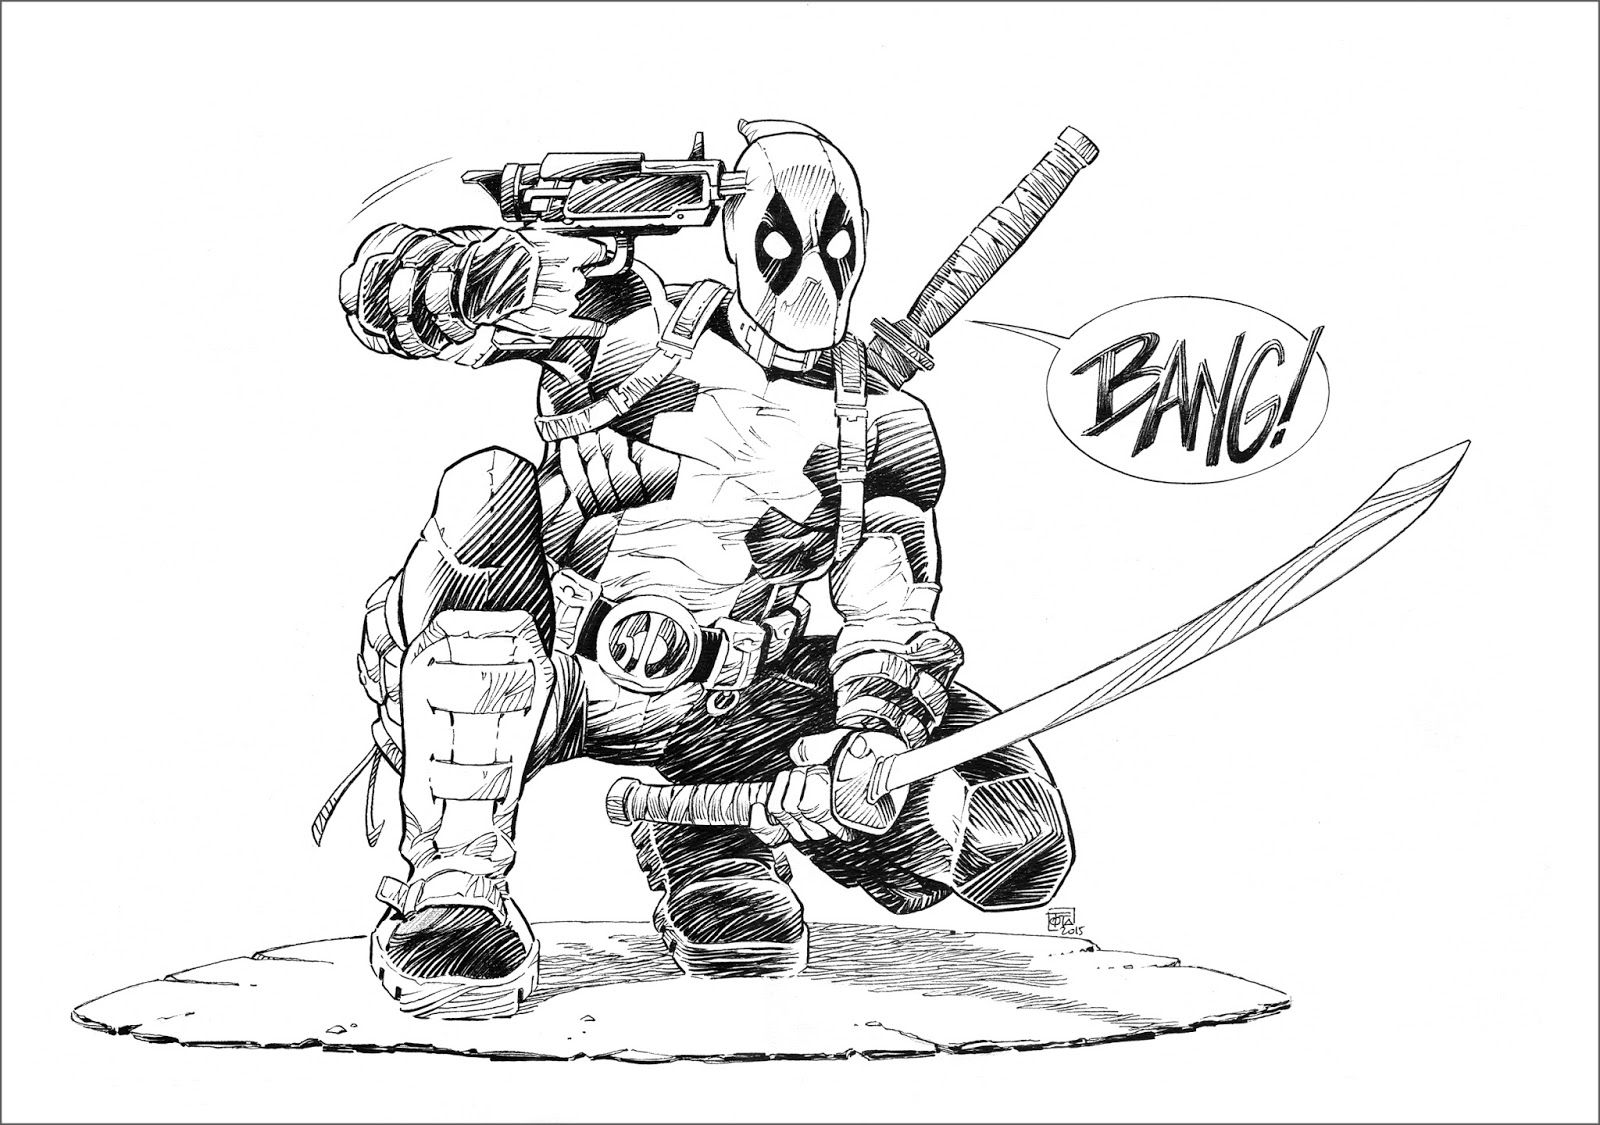 Image deadpool dessin fonds d 39 cran hd - Dessin deadpool ...